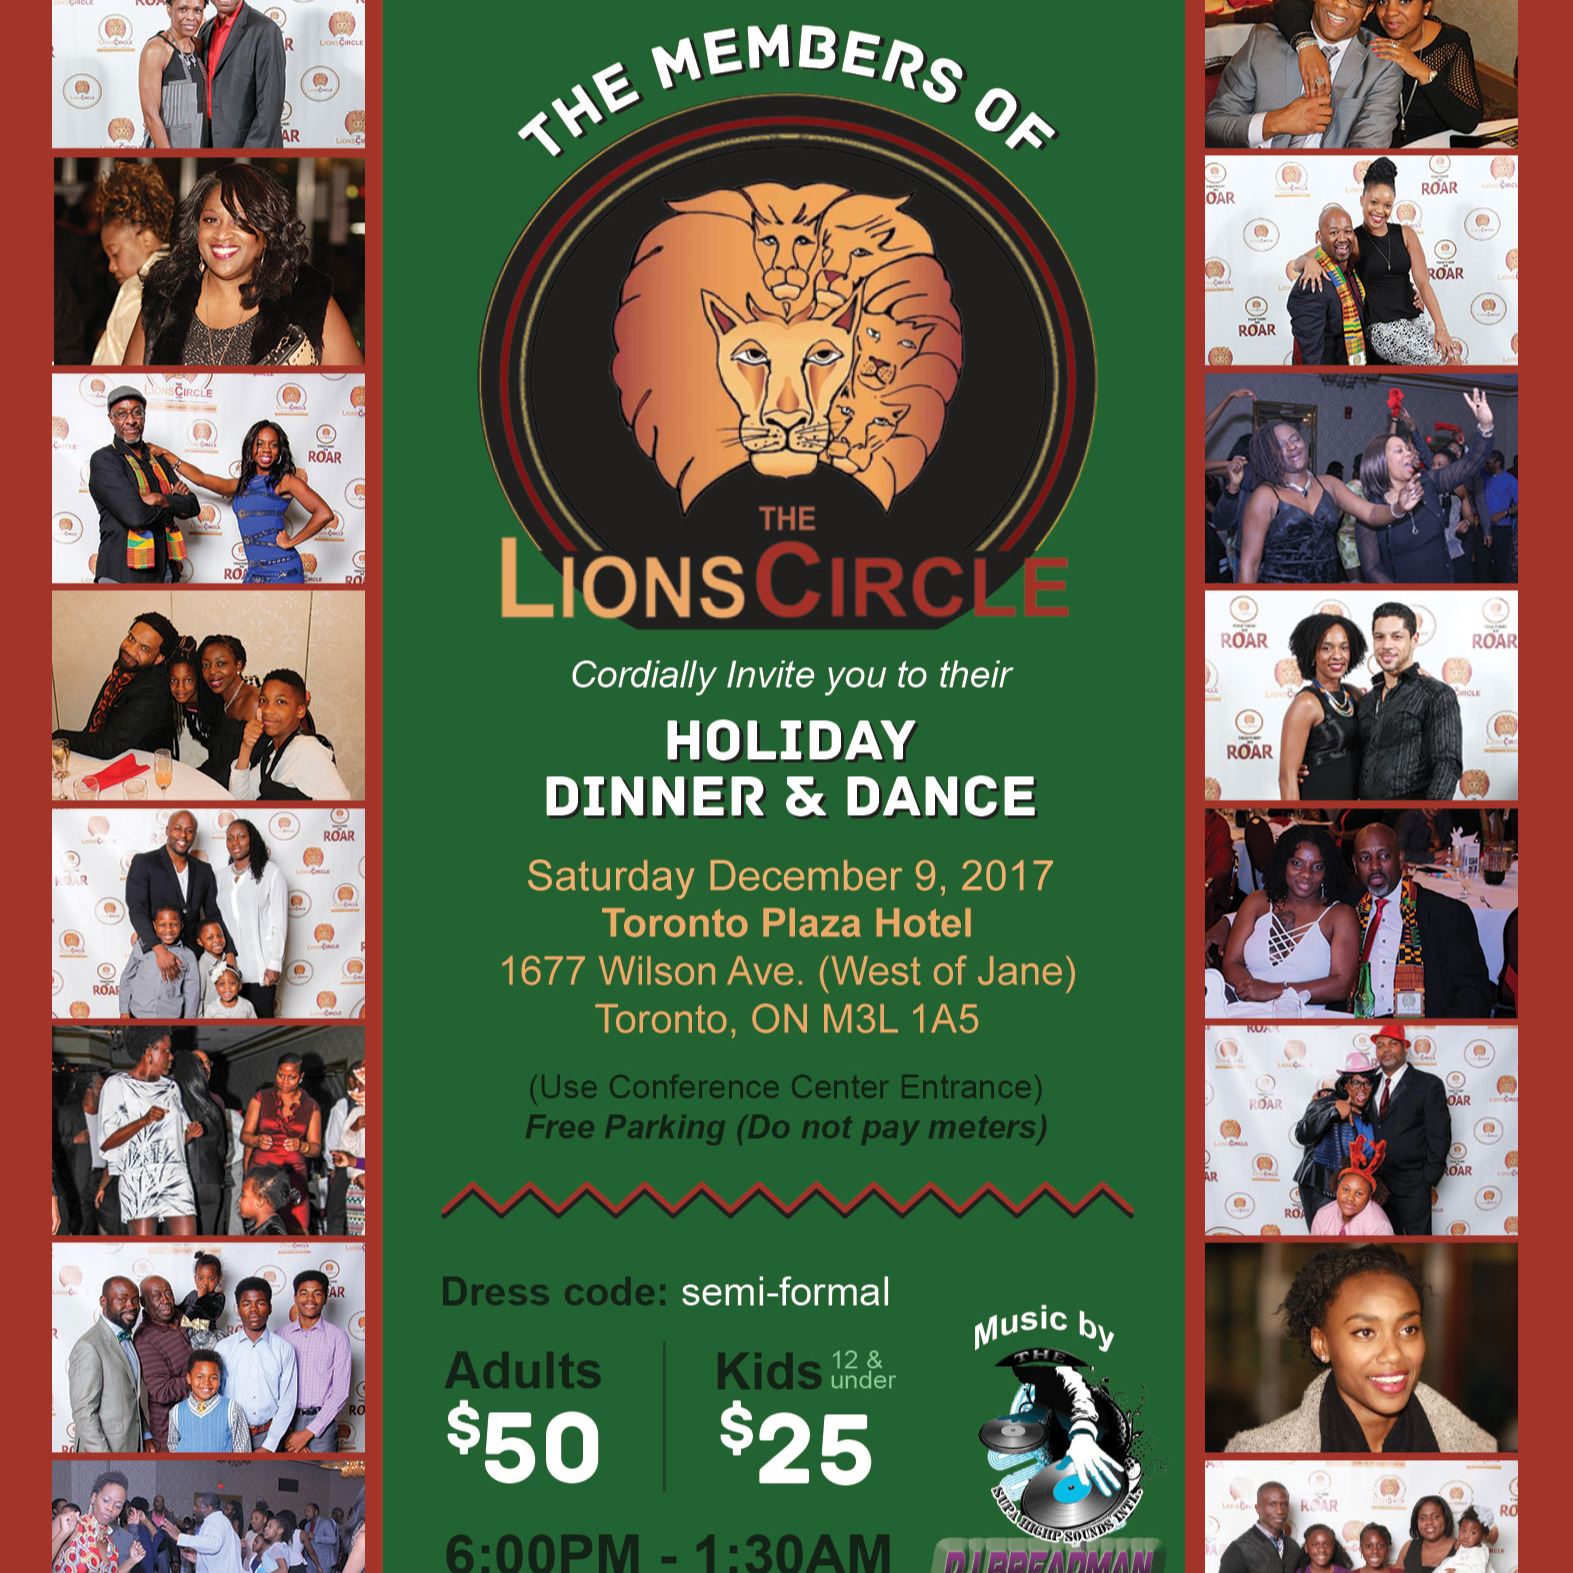 2017 LIONS CIRCLE HOLIDAY DINNER AND DANCE